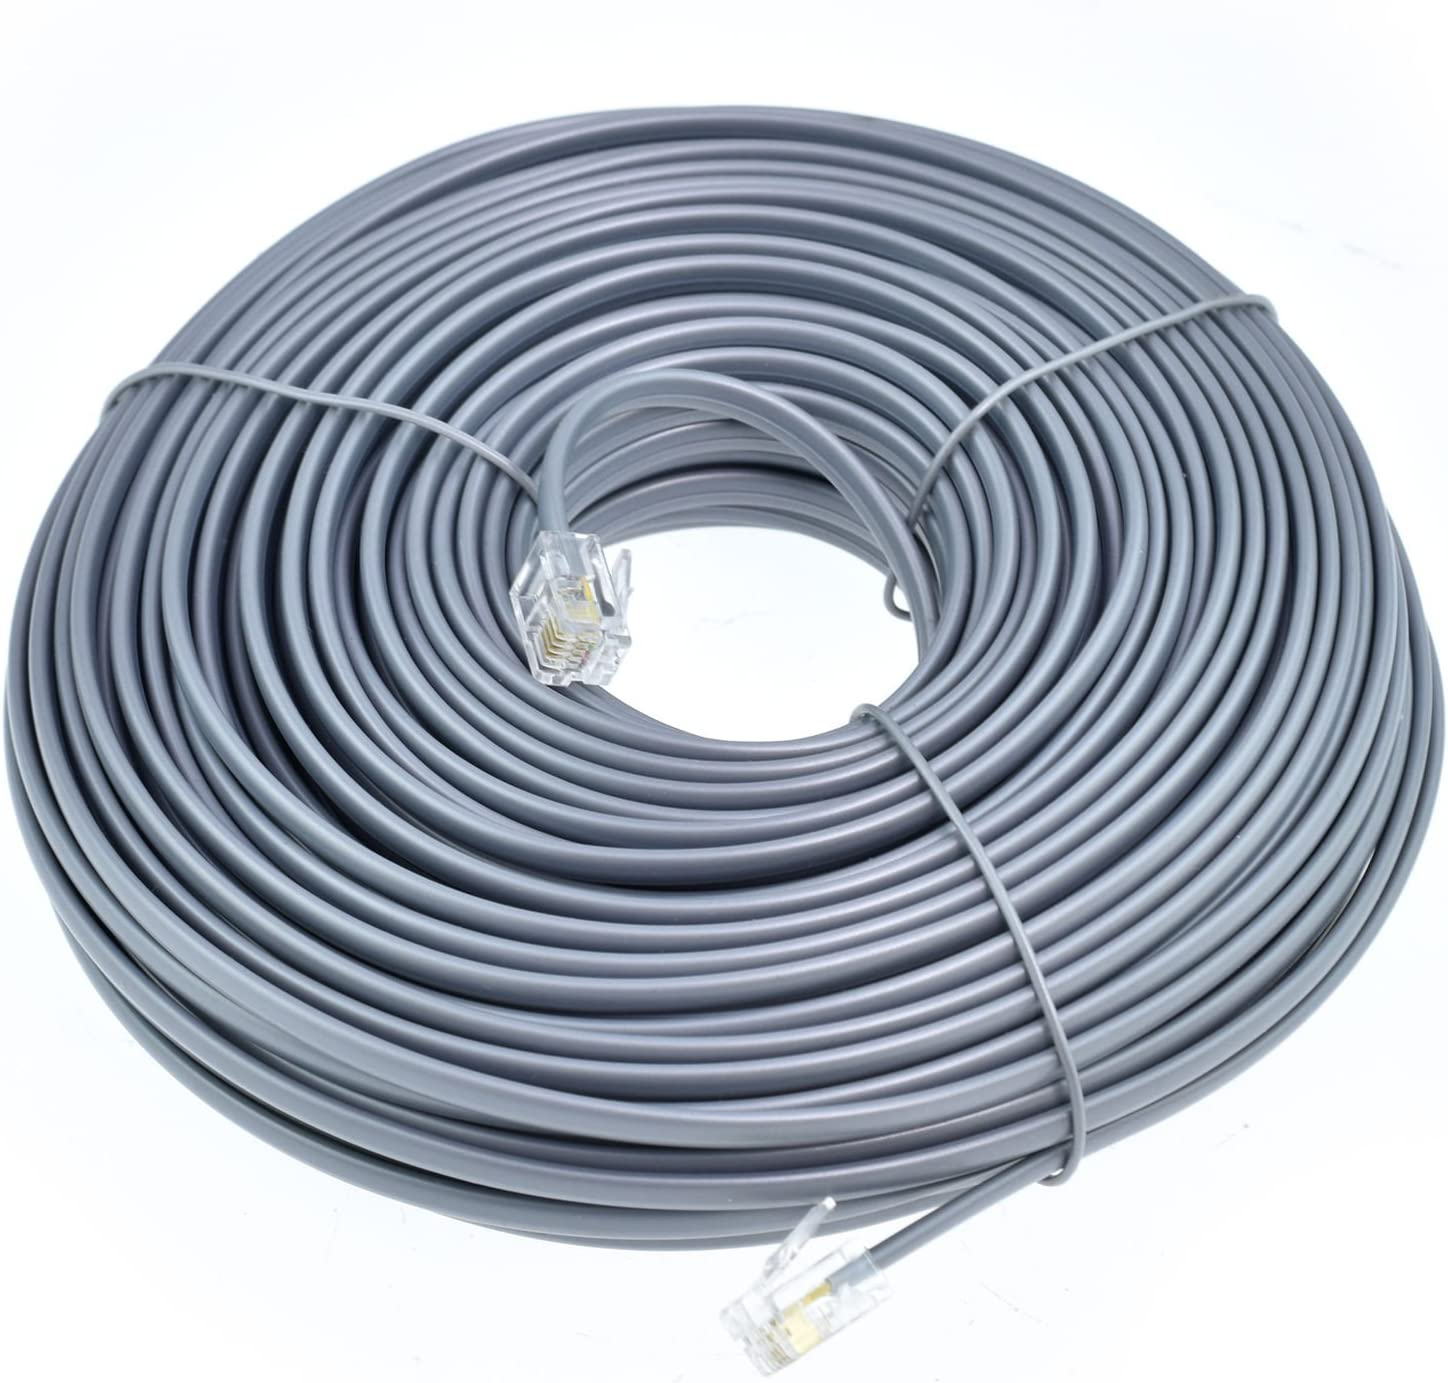 25 FT feet RJ11 6P4C Modular Telephone Extension Cable Phone Cord Line Wire Grey